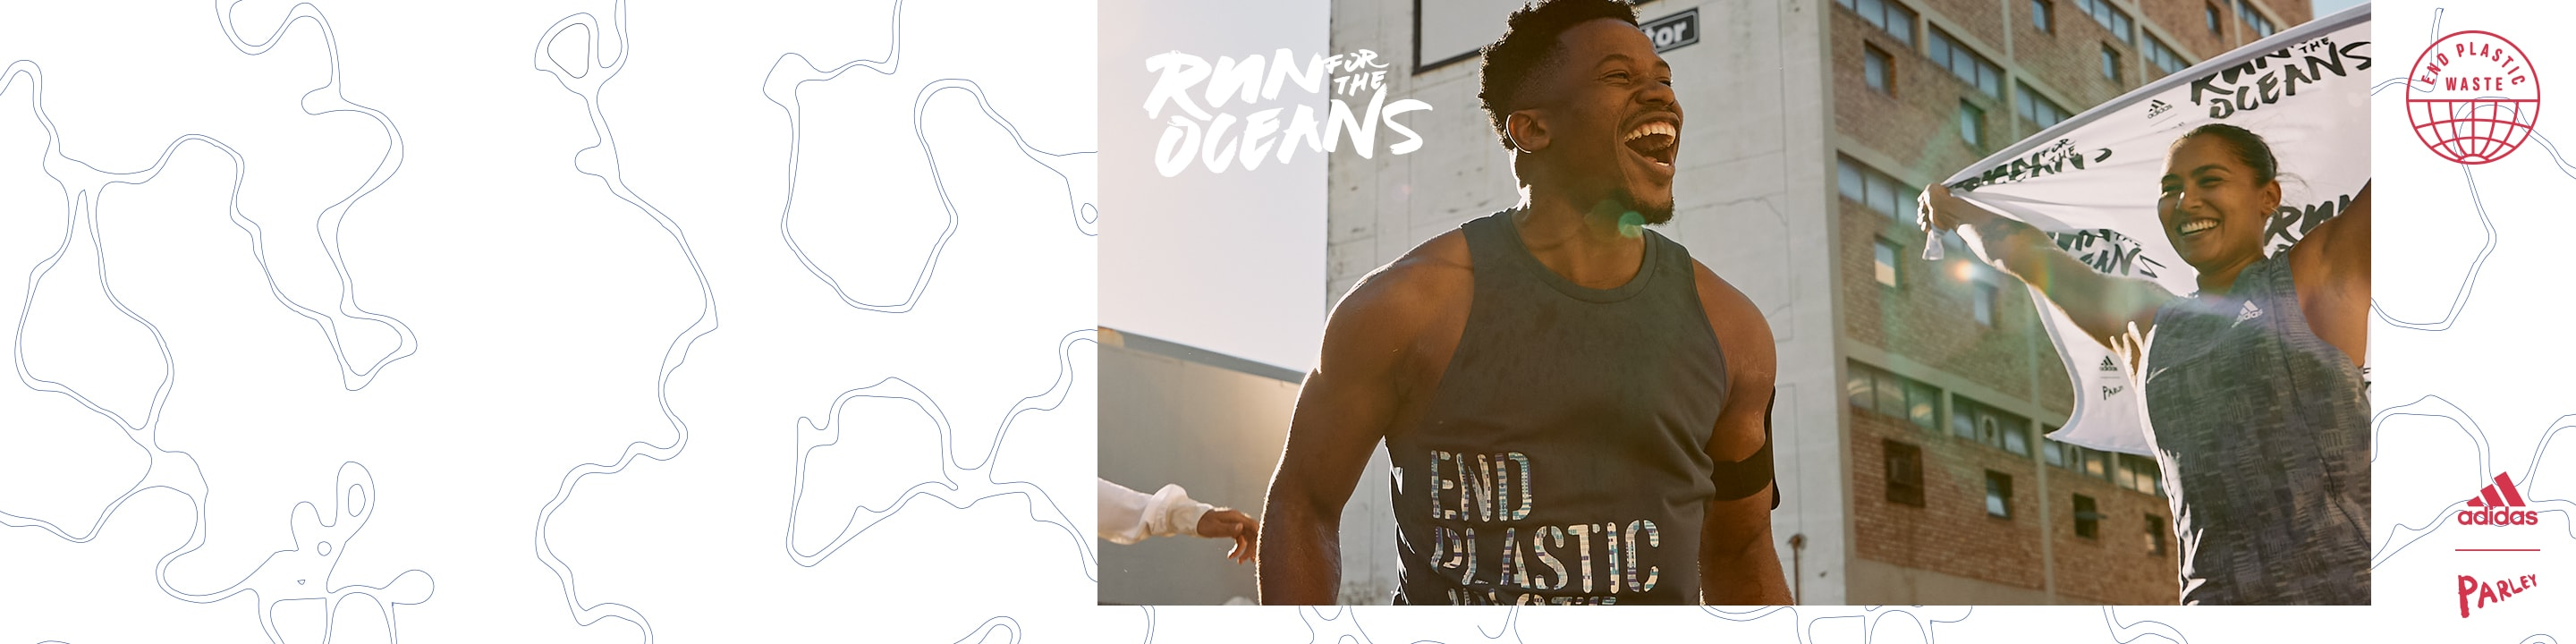 Men and women are warming up to get ready for Run For The Oceans